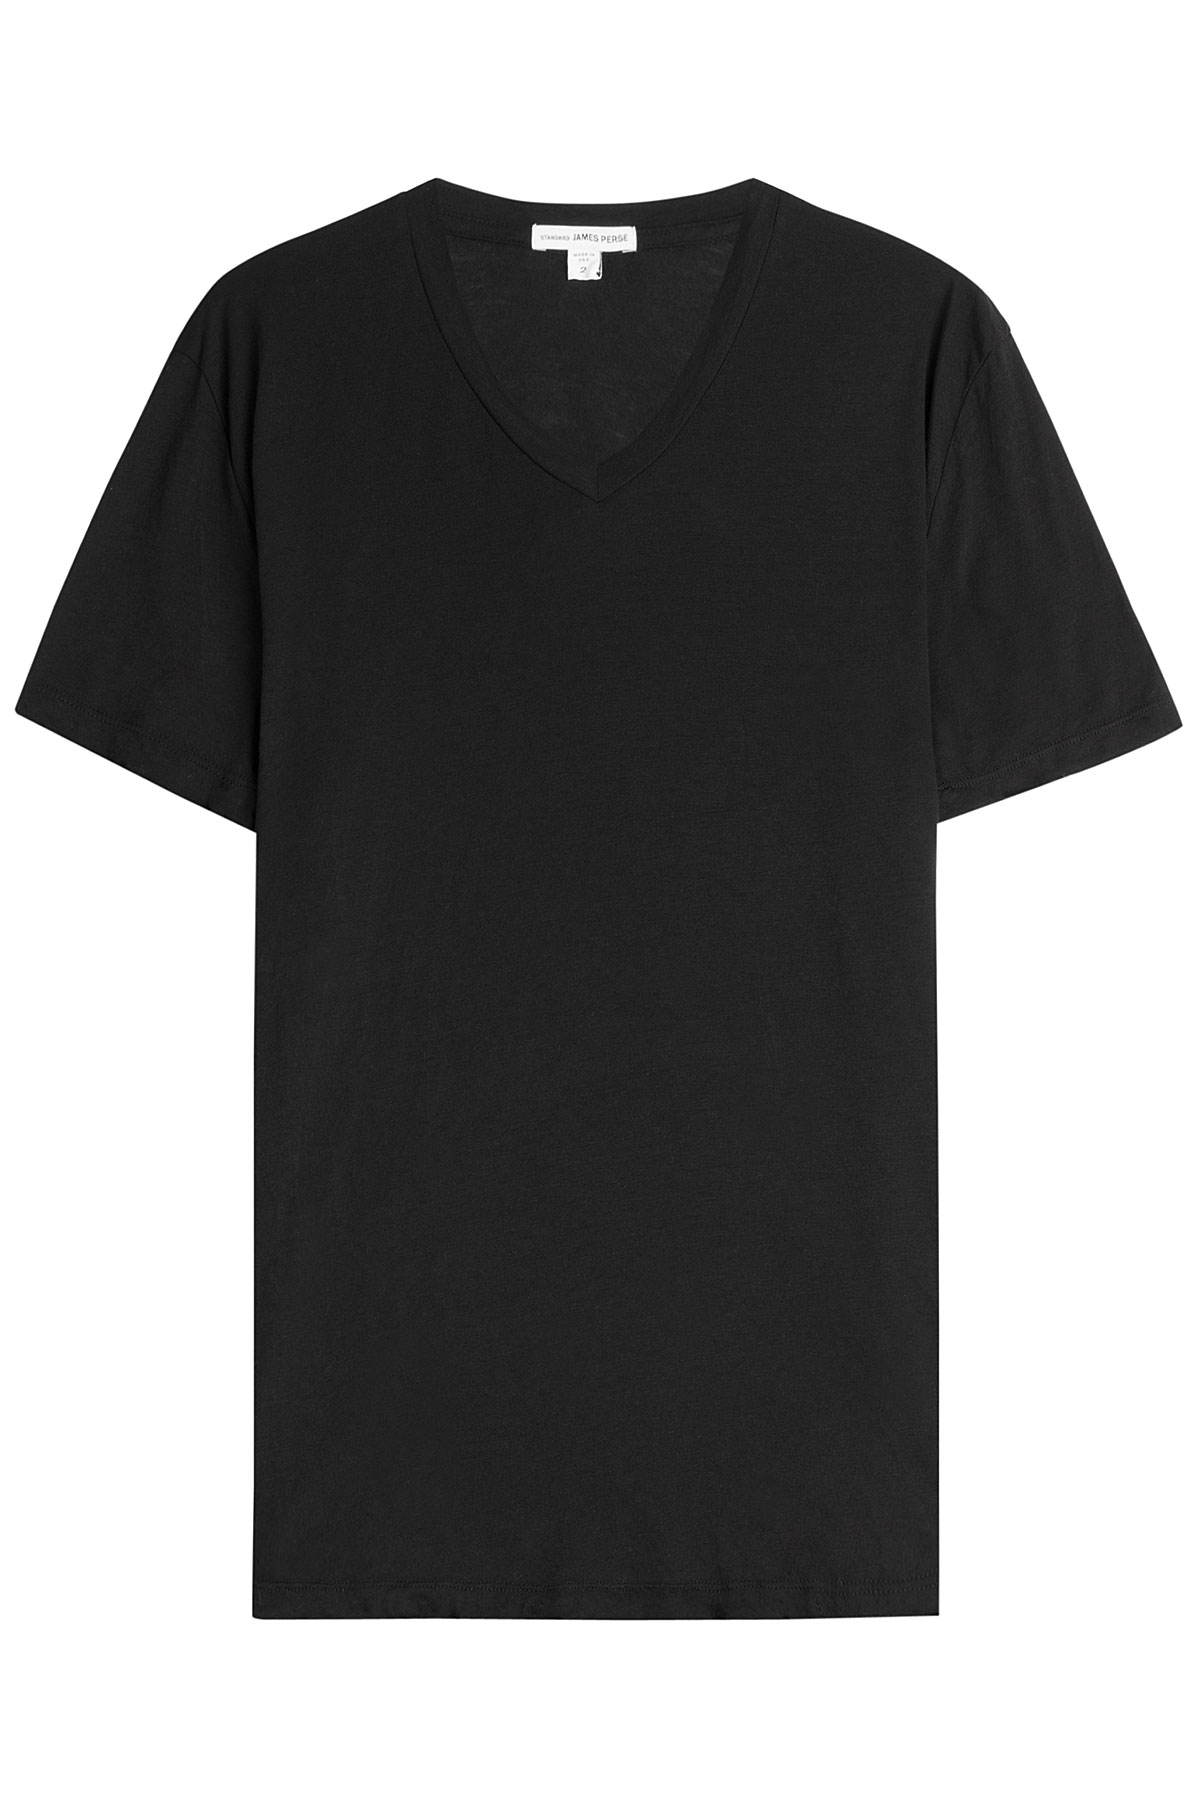 James perse cotton t shirt black in black for men lyst for James perse t shirts sale